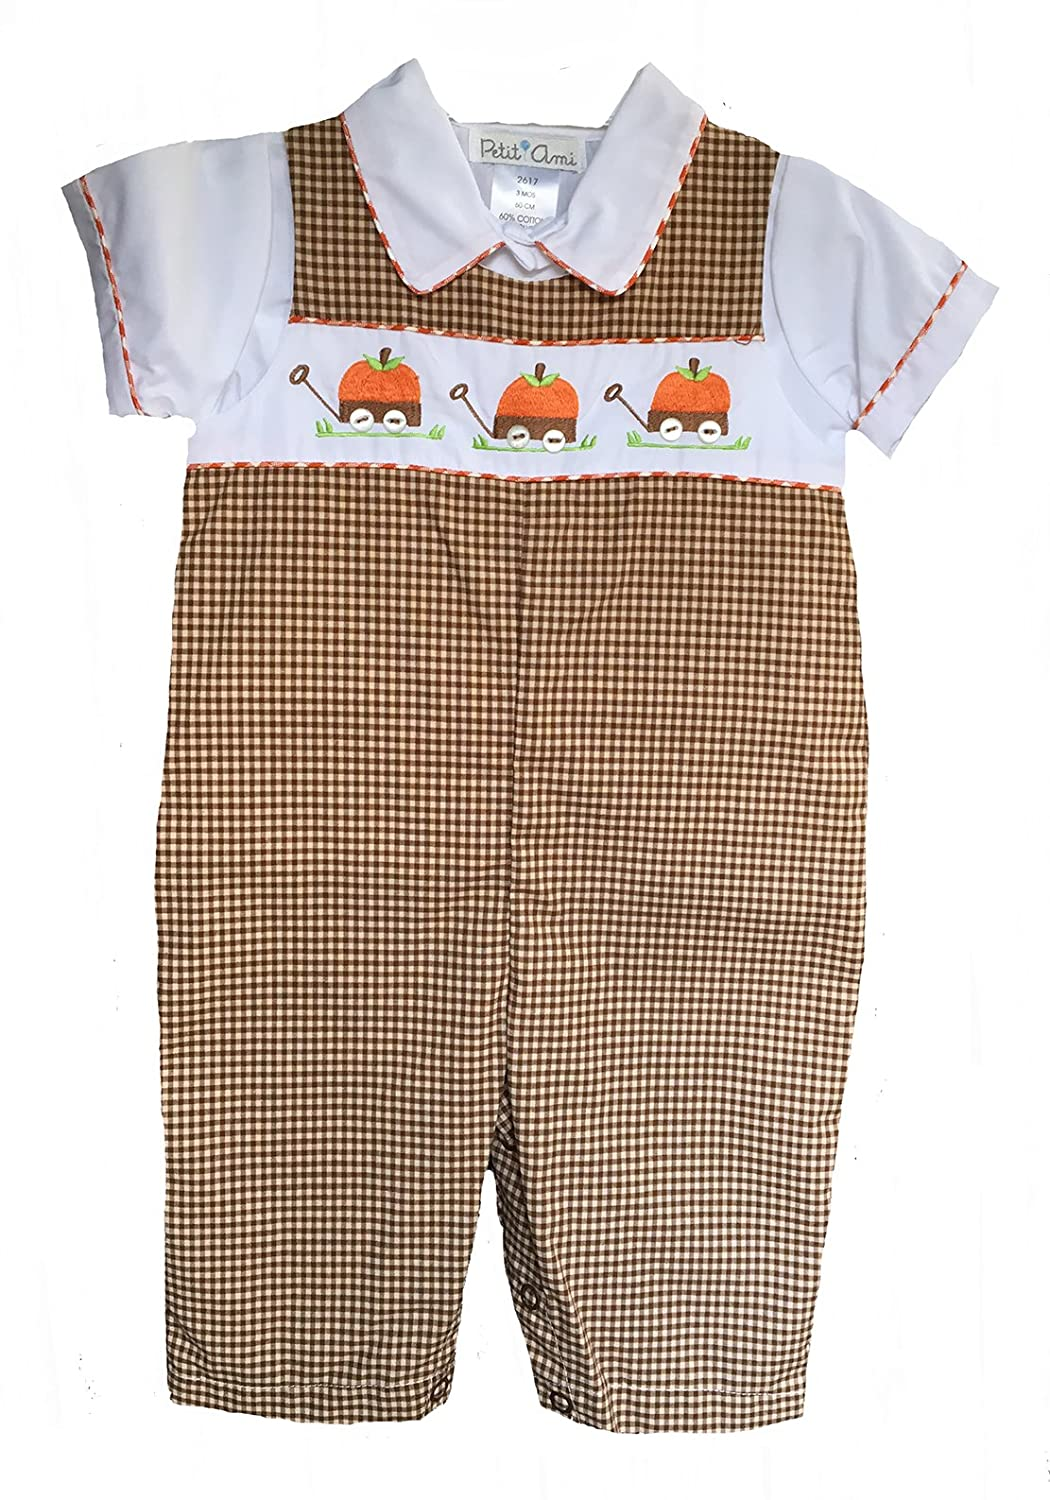 Boys Brown & White Check Embroidered Pumpkins Overalls Set 3m-18m